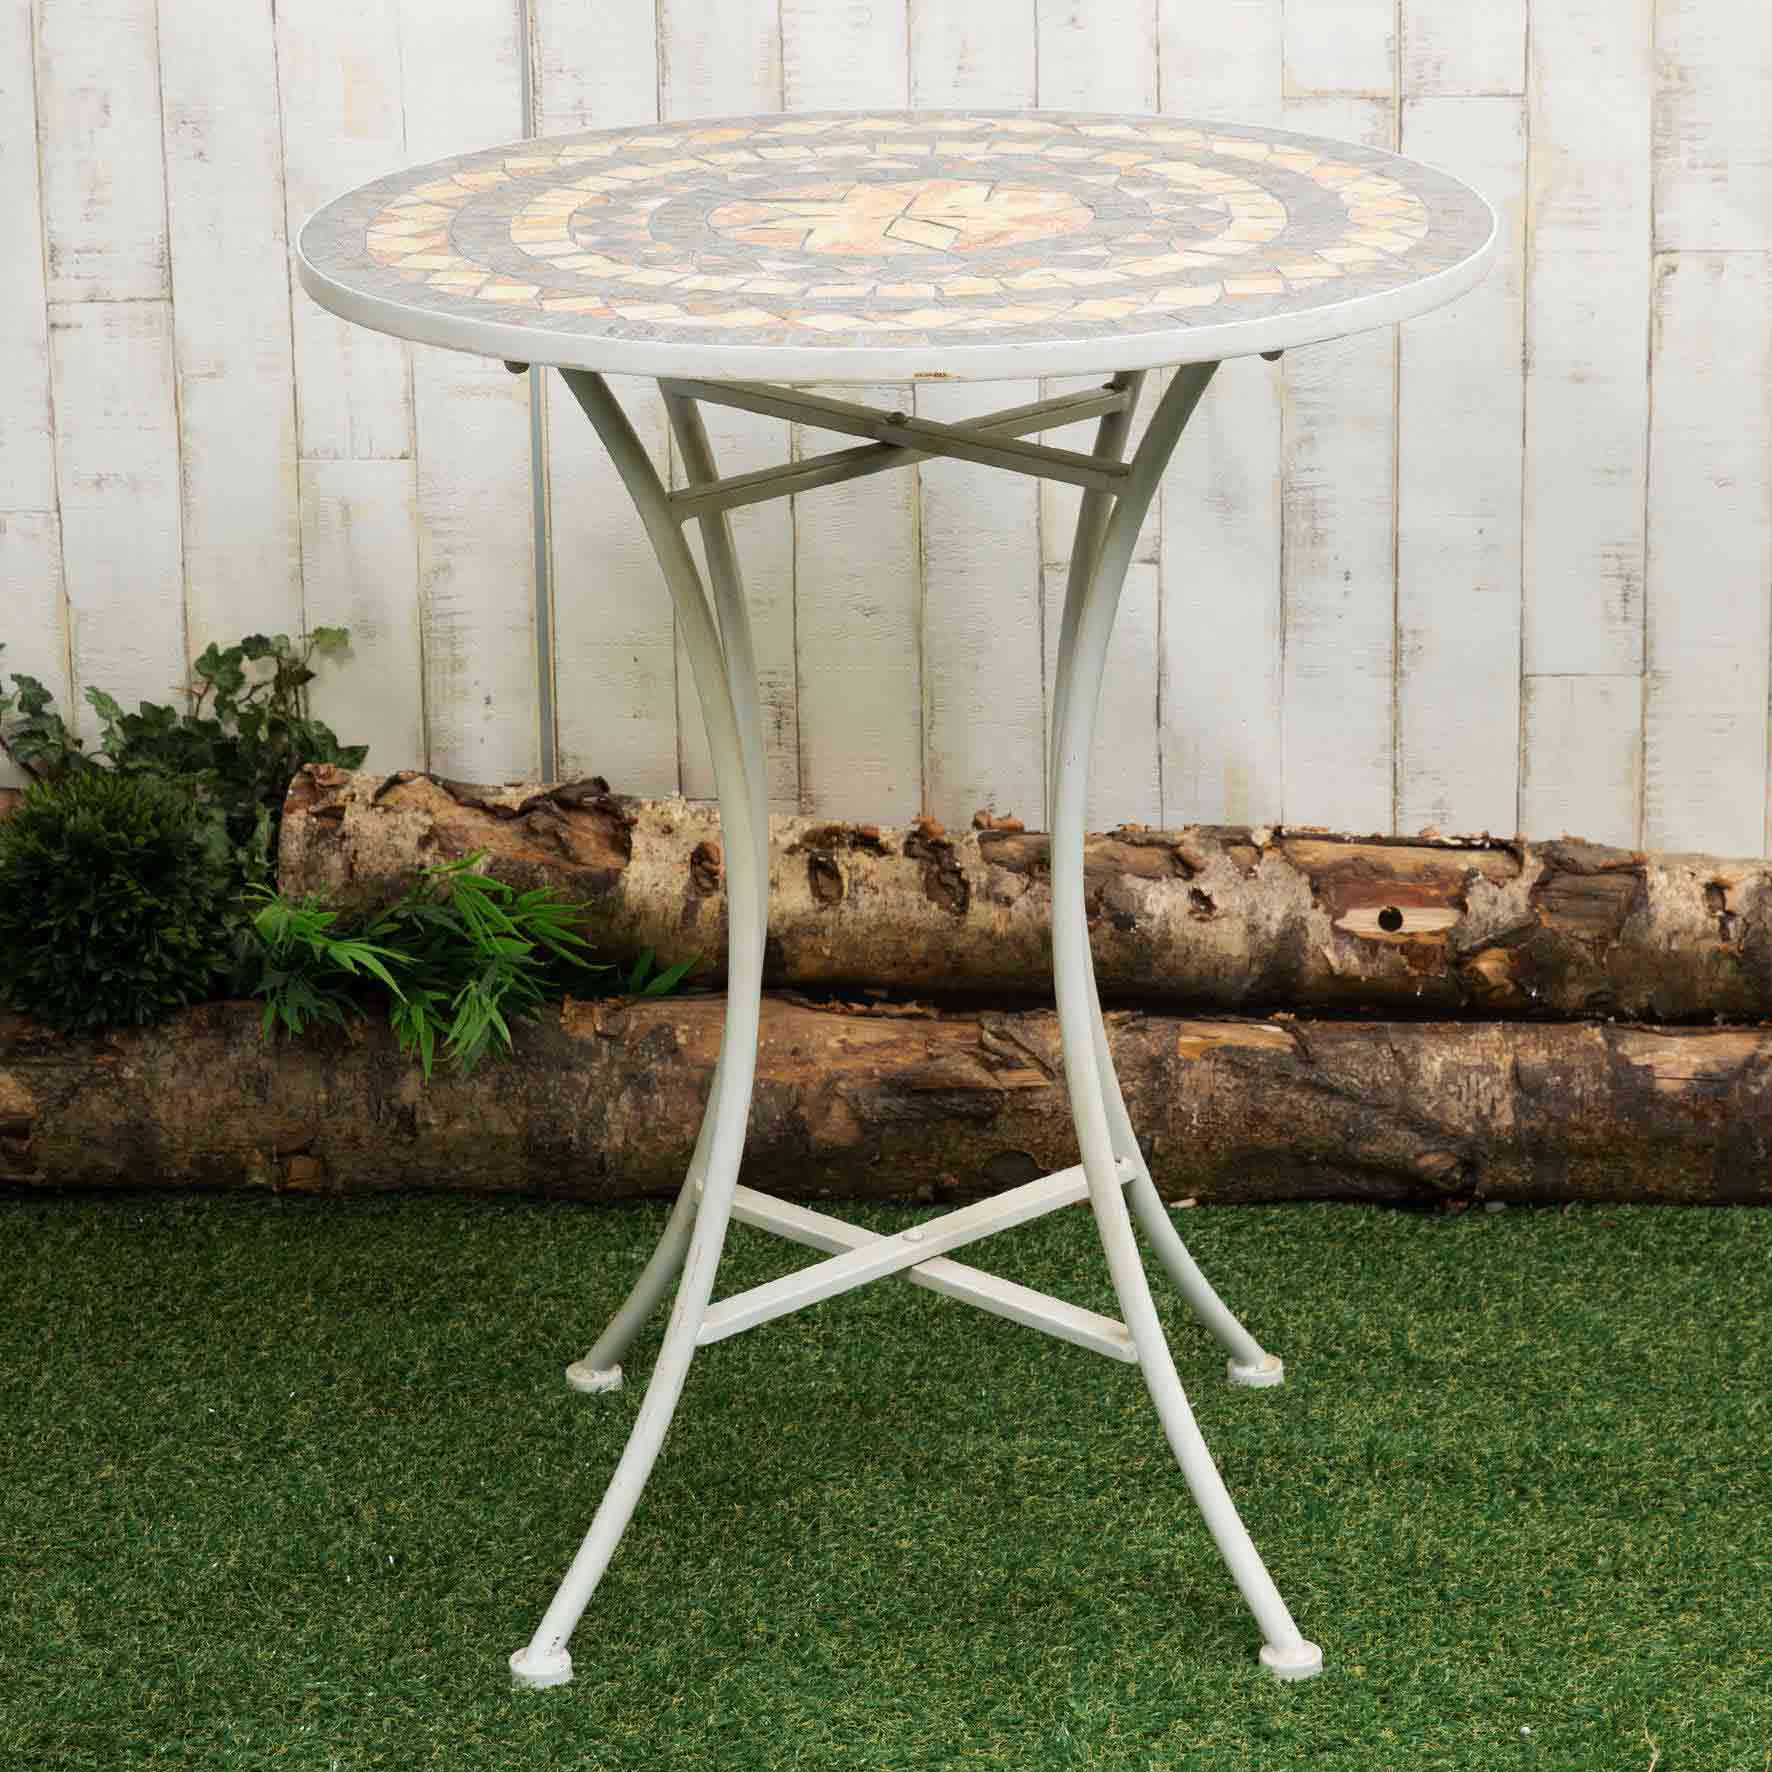 Country Living Cream Mosaic Metal Table - 71x60cm